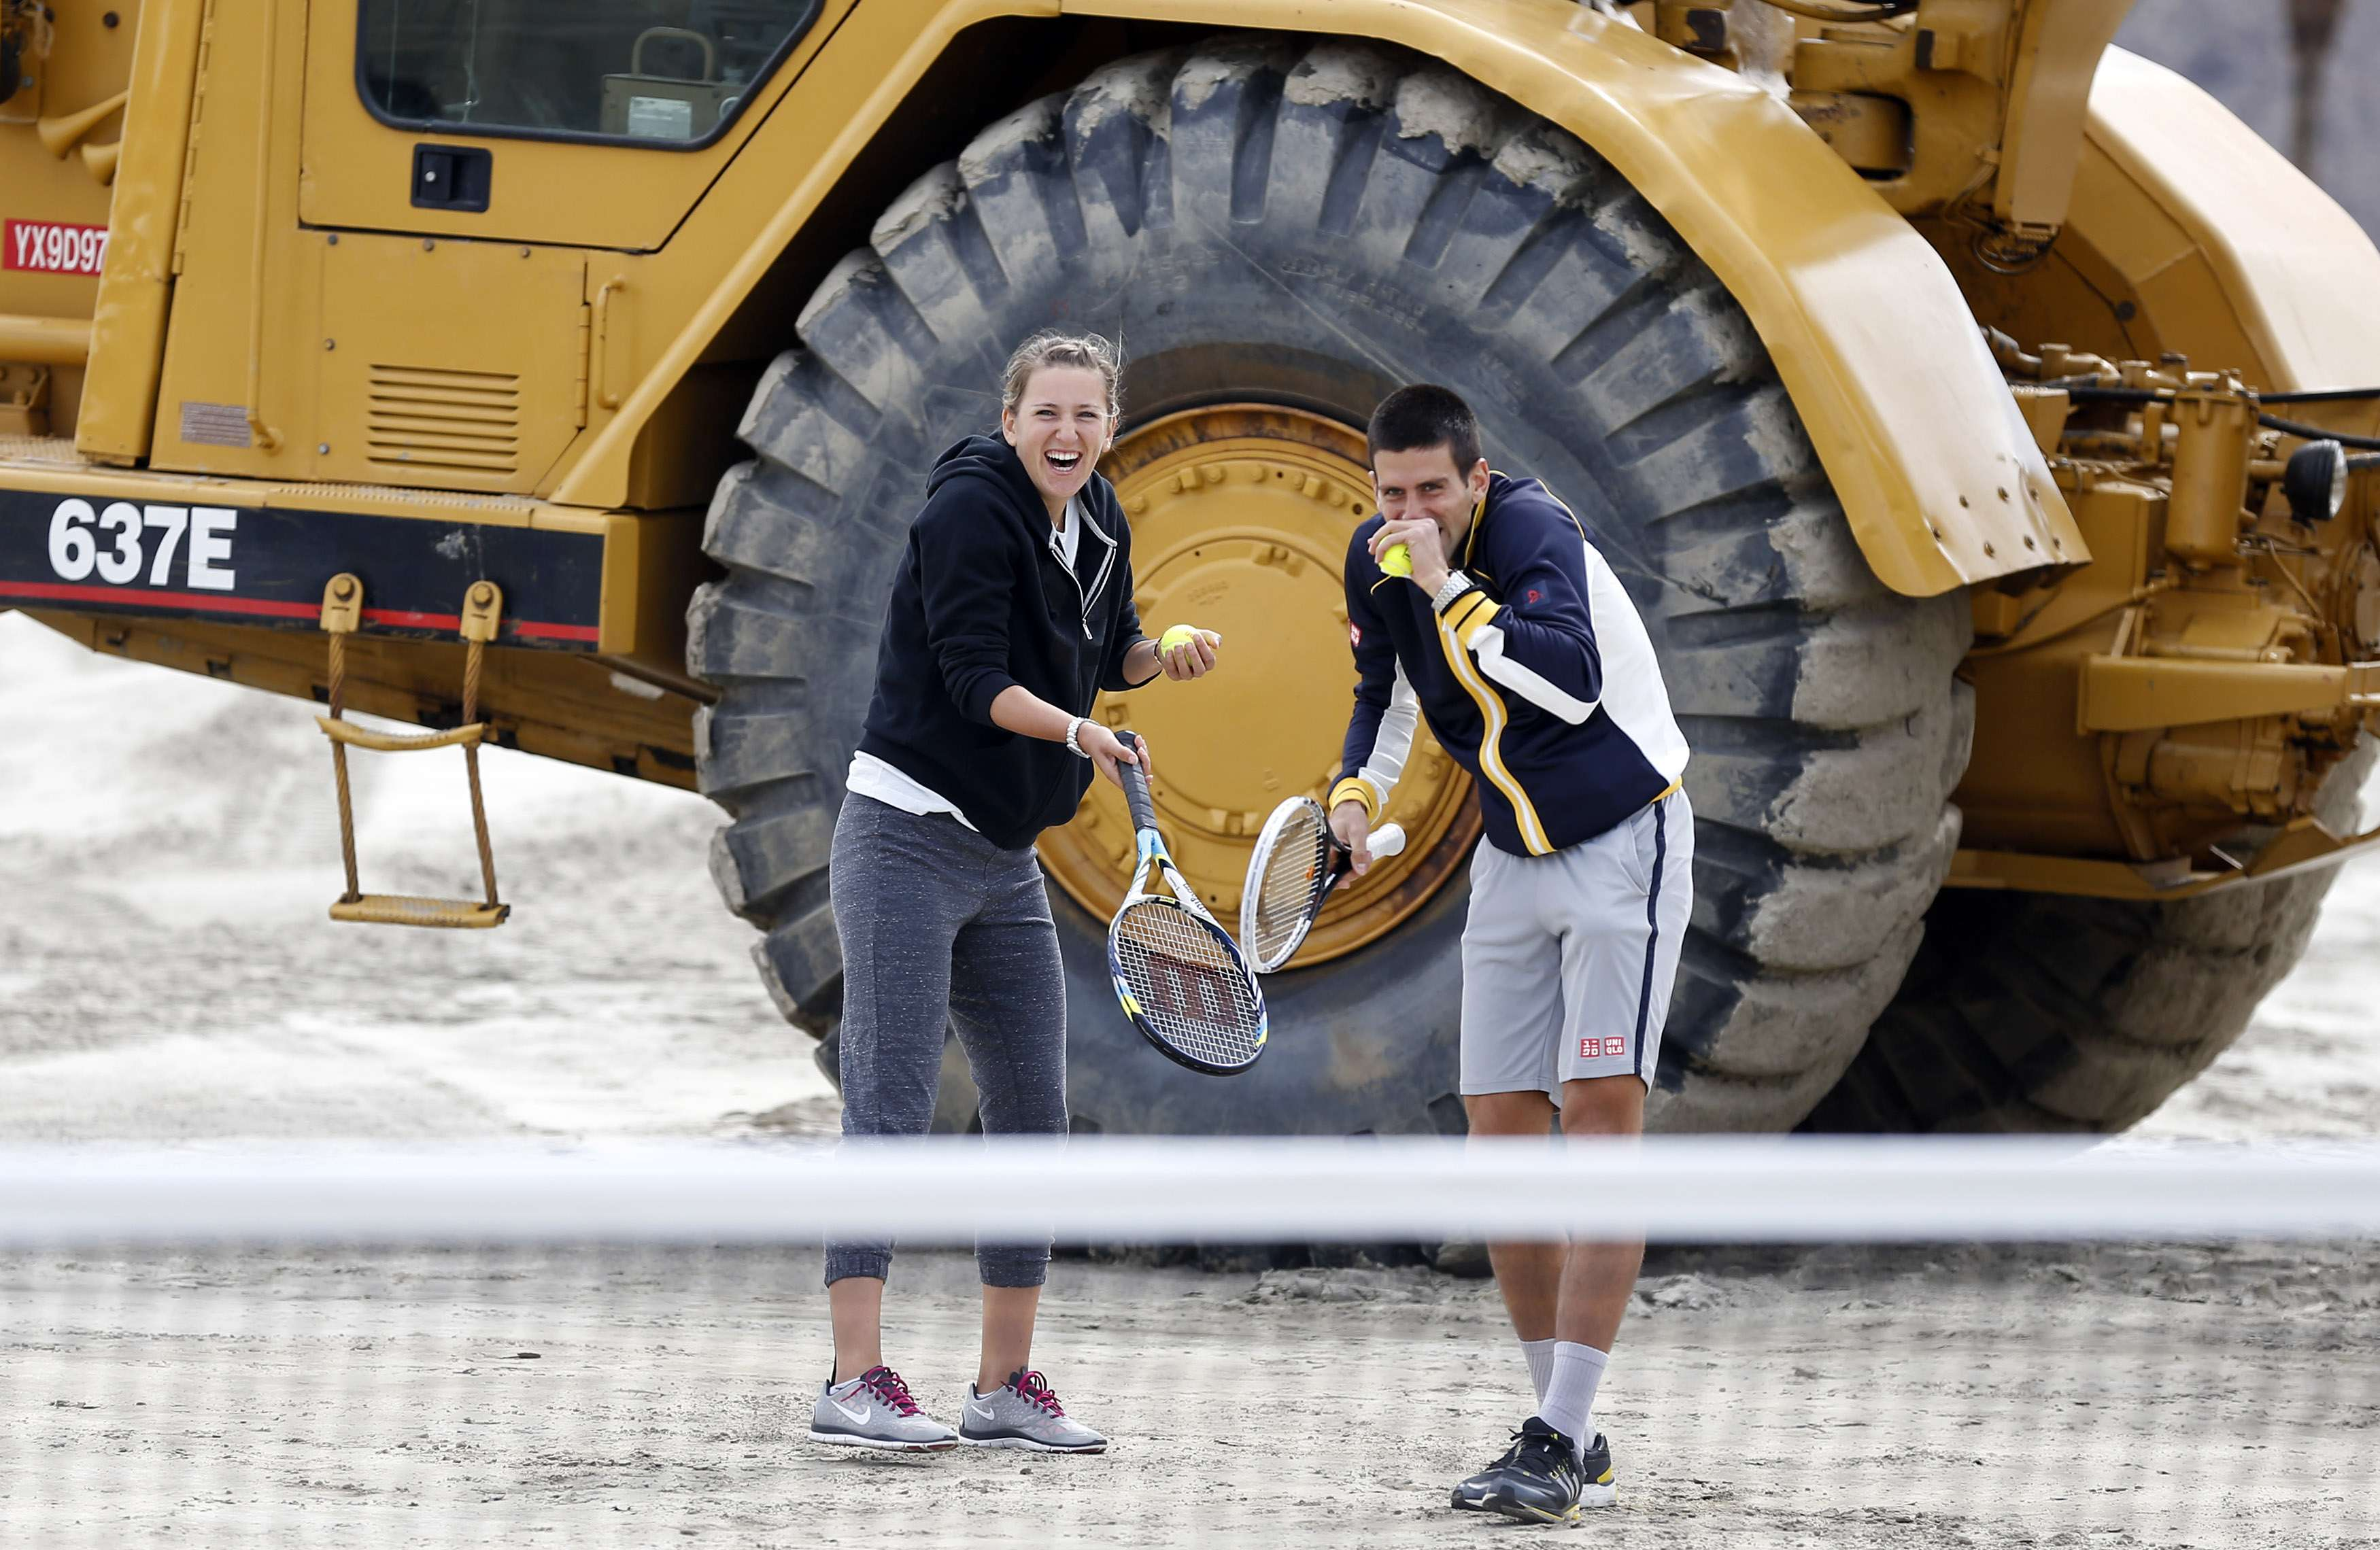 Victoria Azarenka, de Bielorrusia, y Novak Djokovic, de Serbia, rompen en risas despus de un saque ceremonial hacia los espectadores y fotgrafos durante una ceremonia de colocacin de primera piedra de la ampliacin del Indian Wells Tennis Garden.